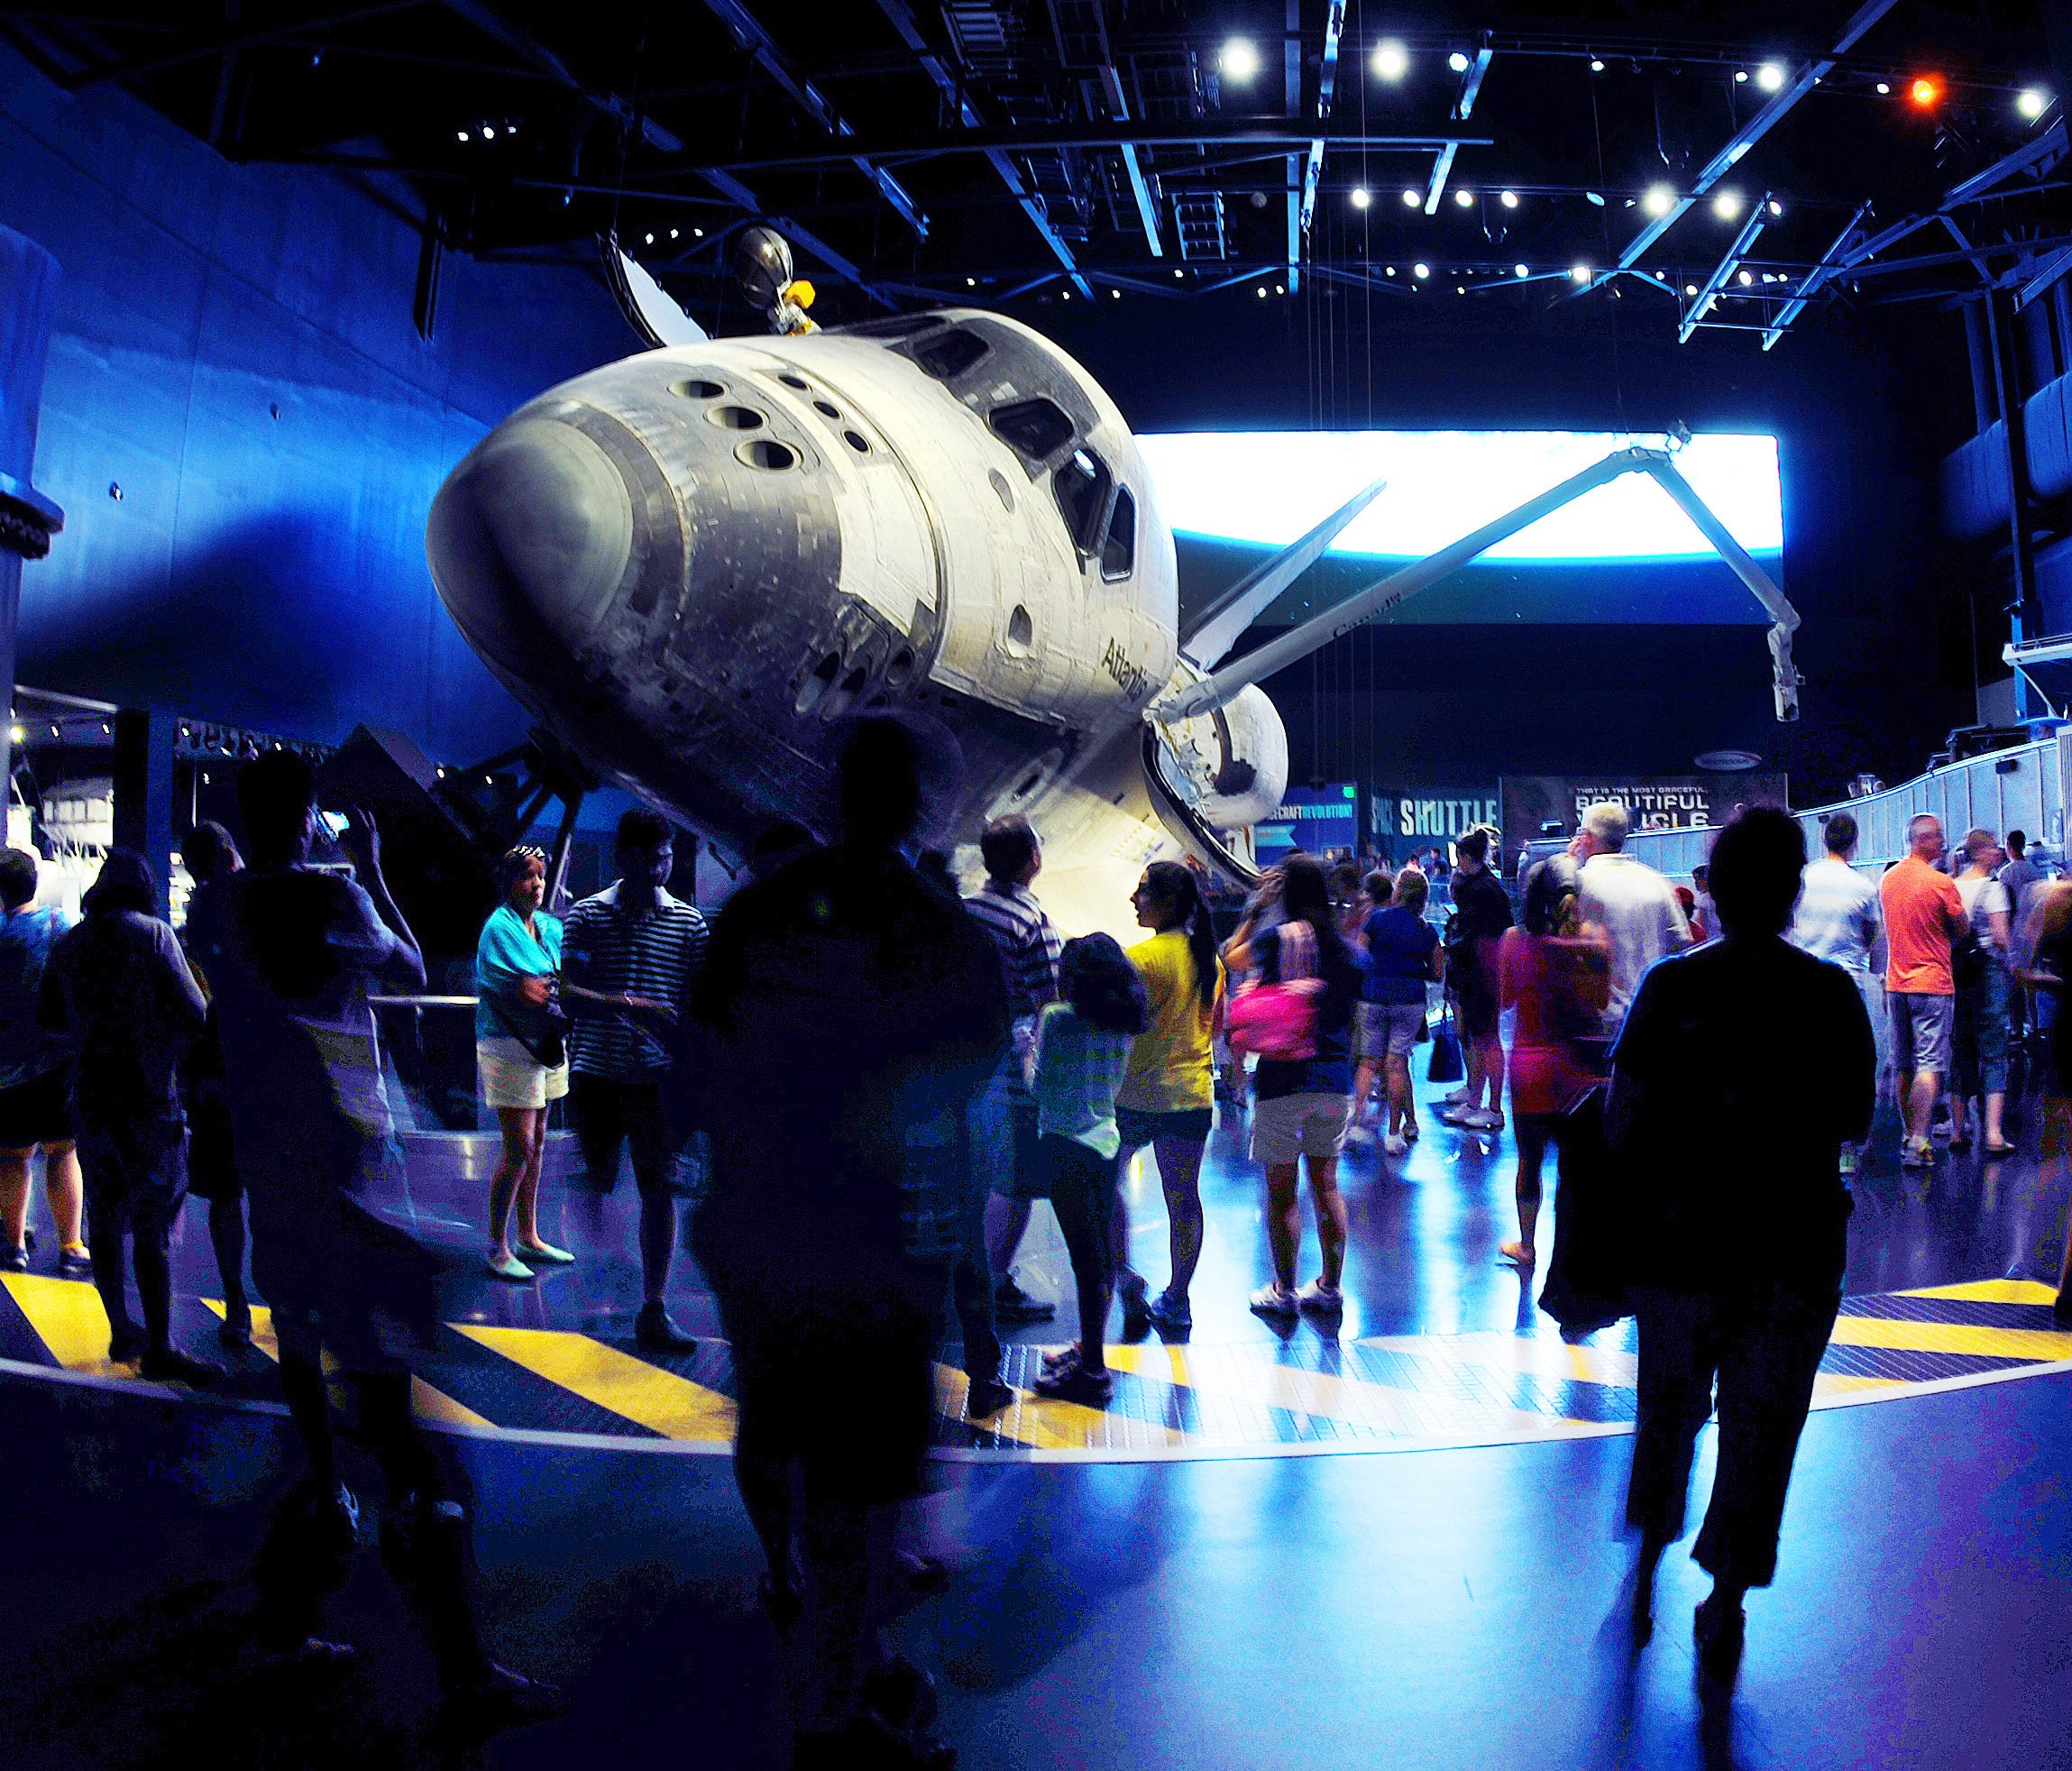 Guests at the Kennedy Space Center Visitor Complex view the Space Shuttle Atlantis exhibit.